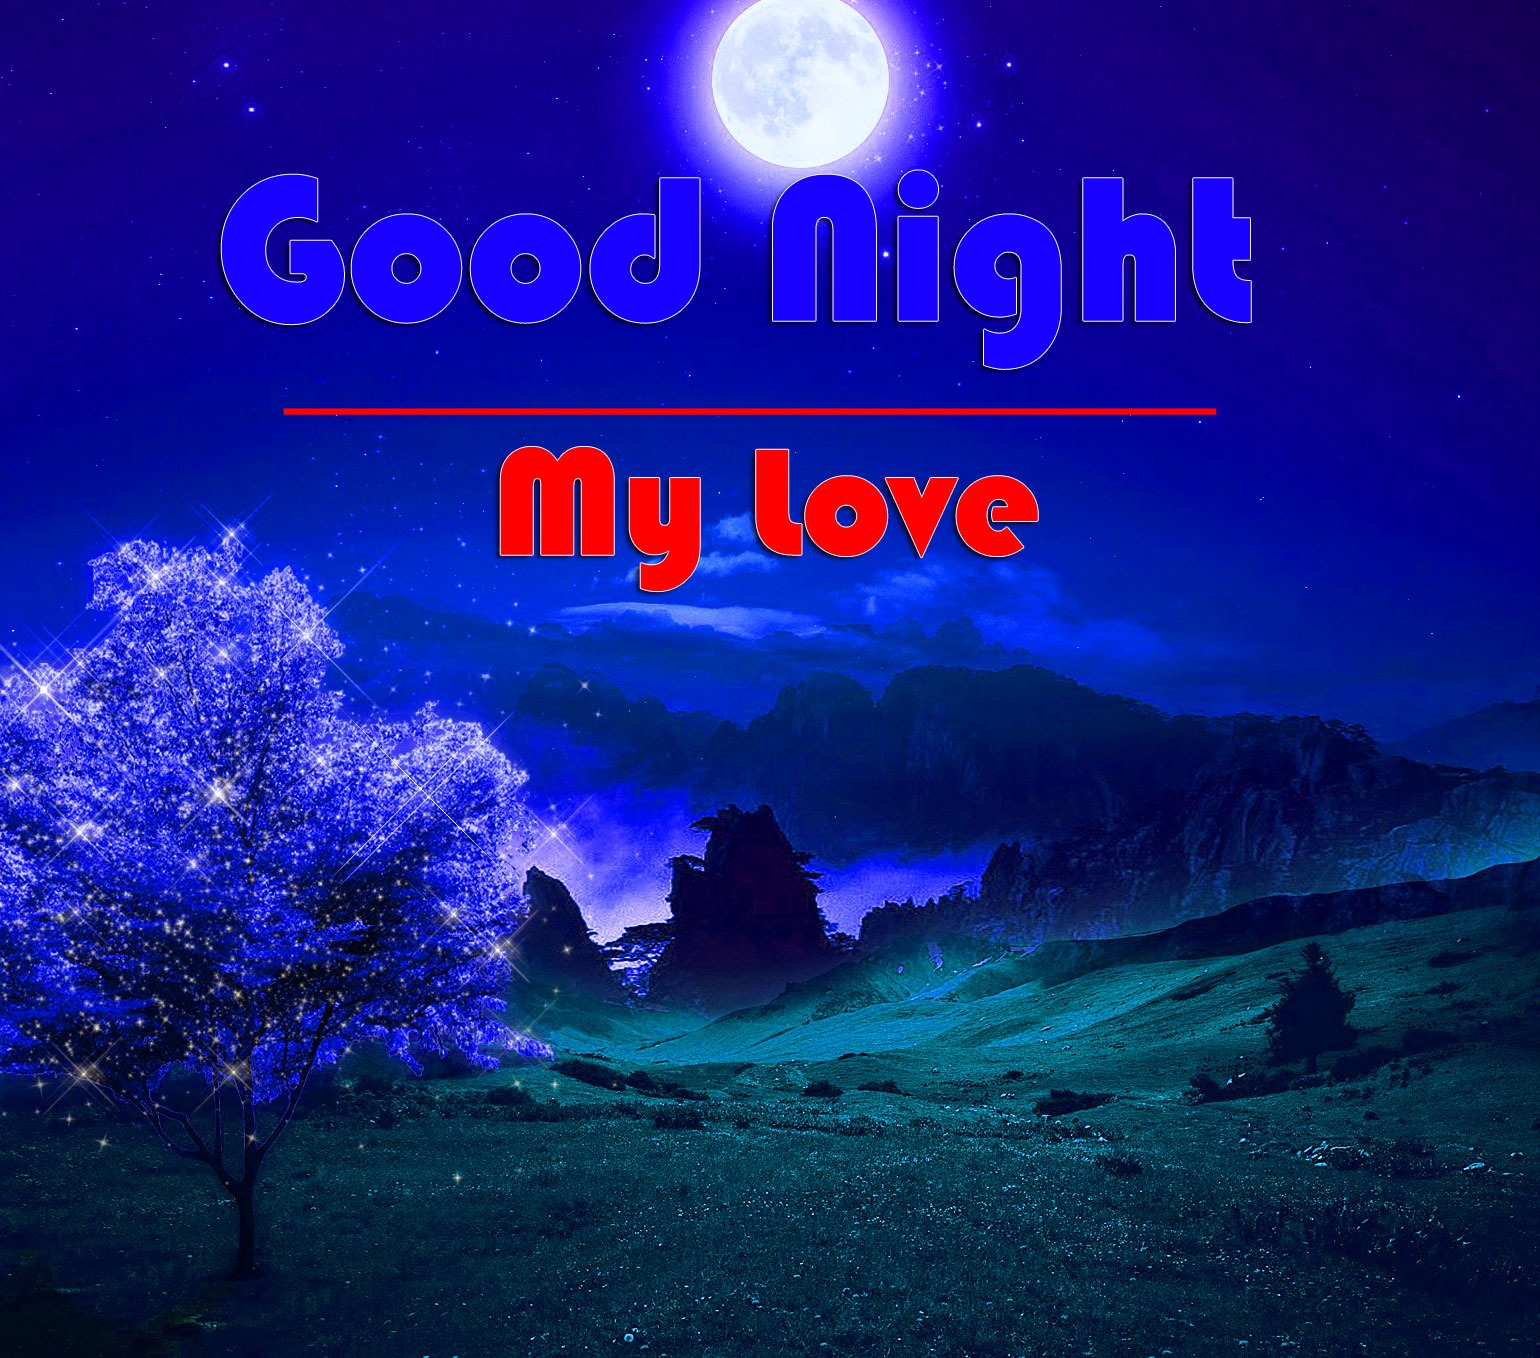 HD Good Night Images Pictures for Love Couple